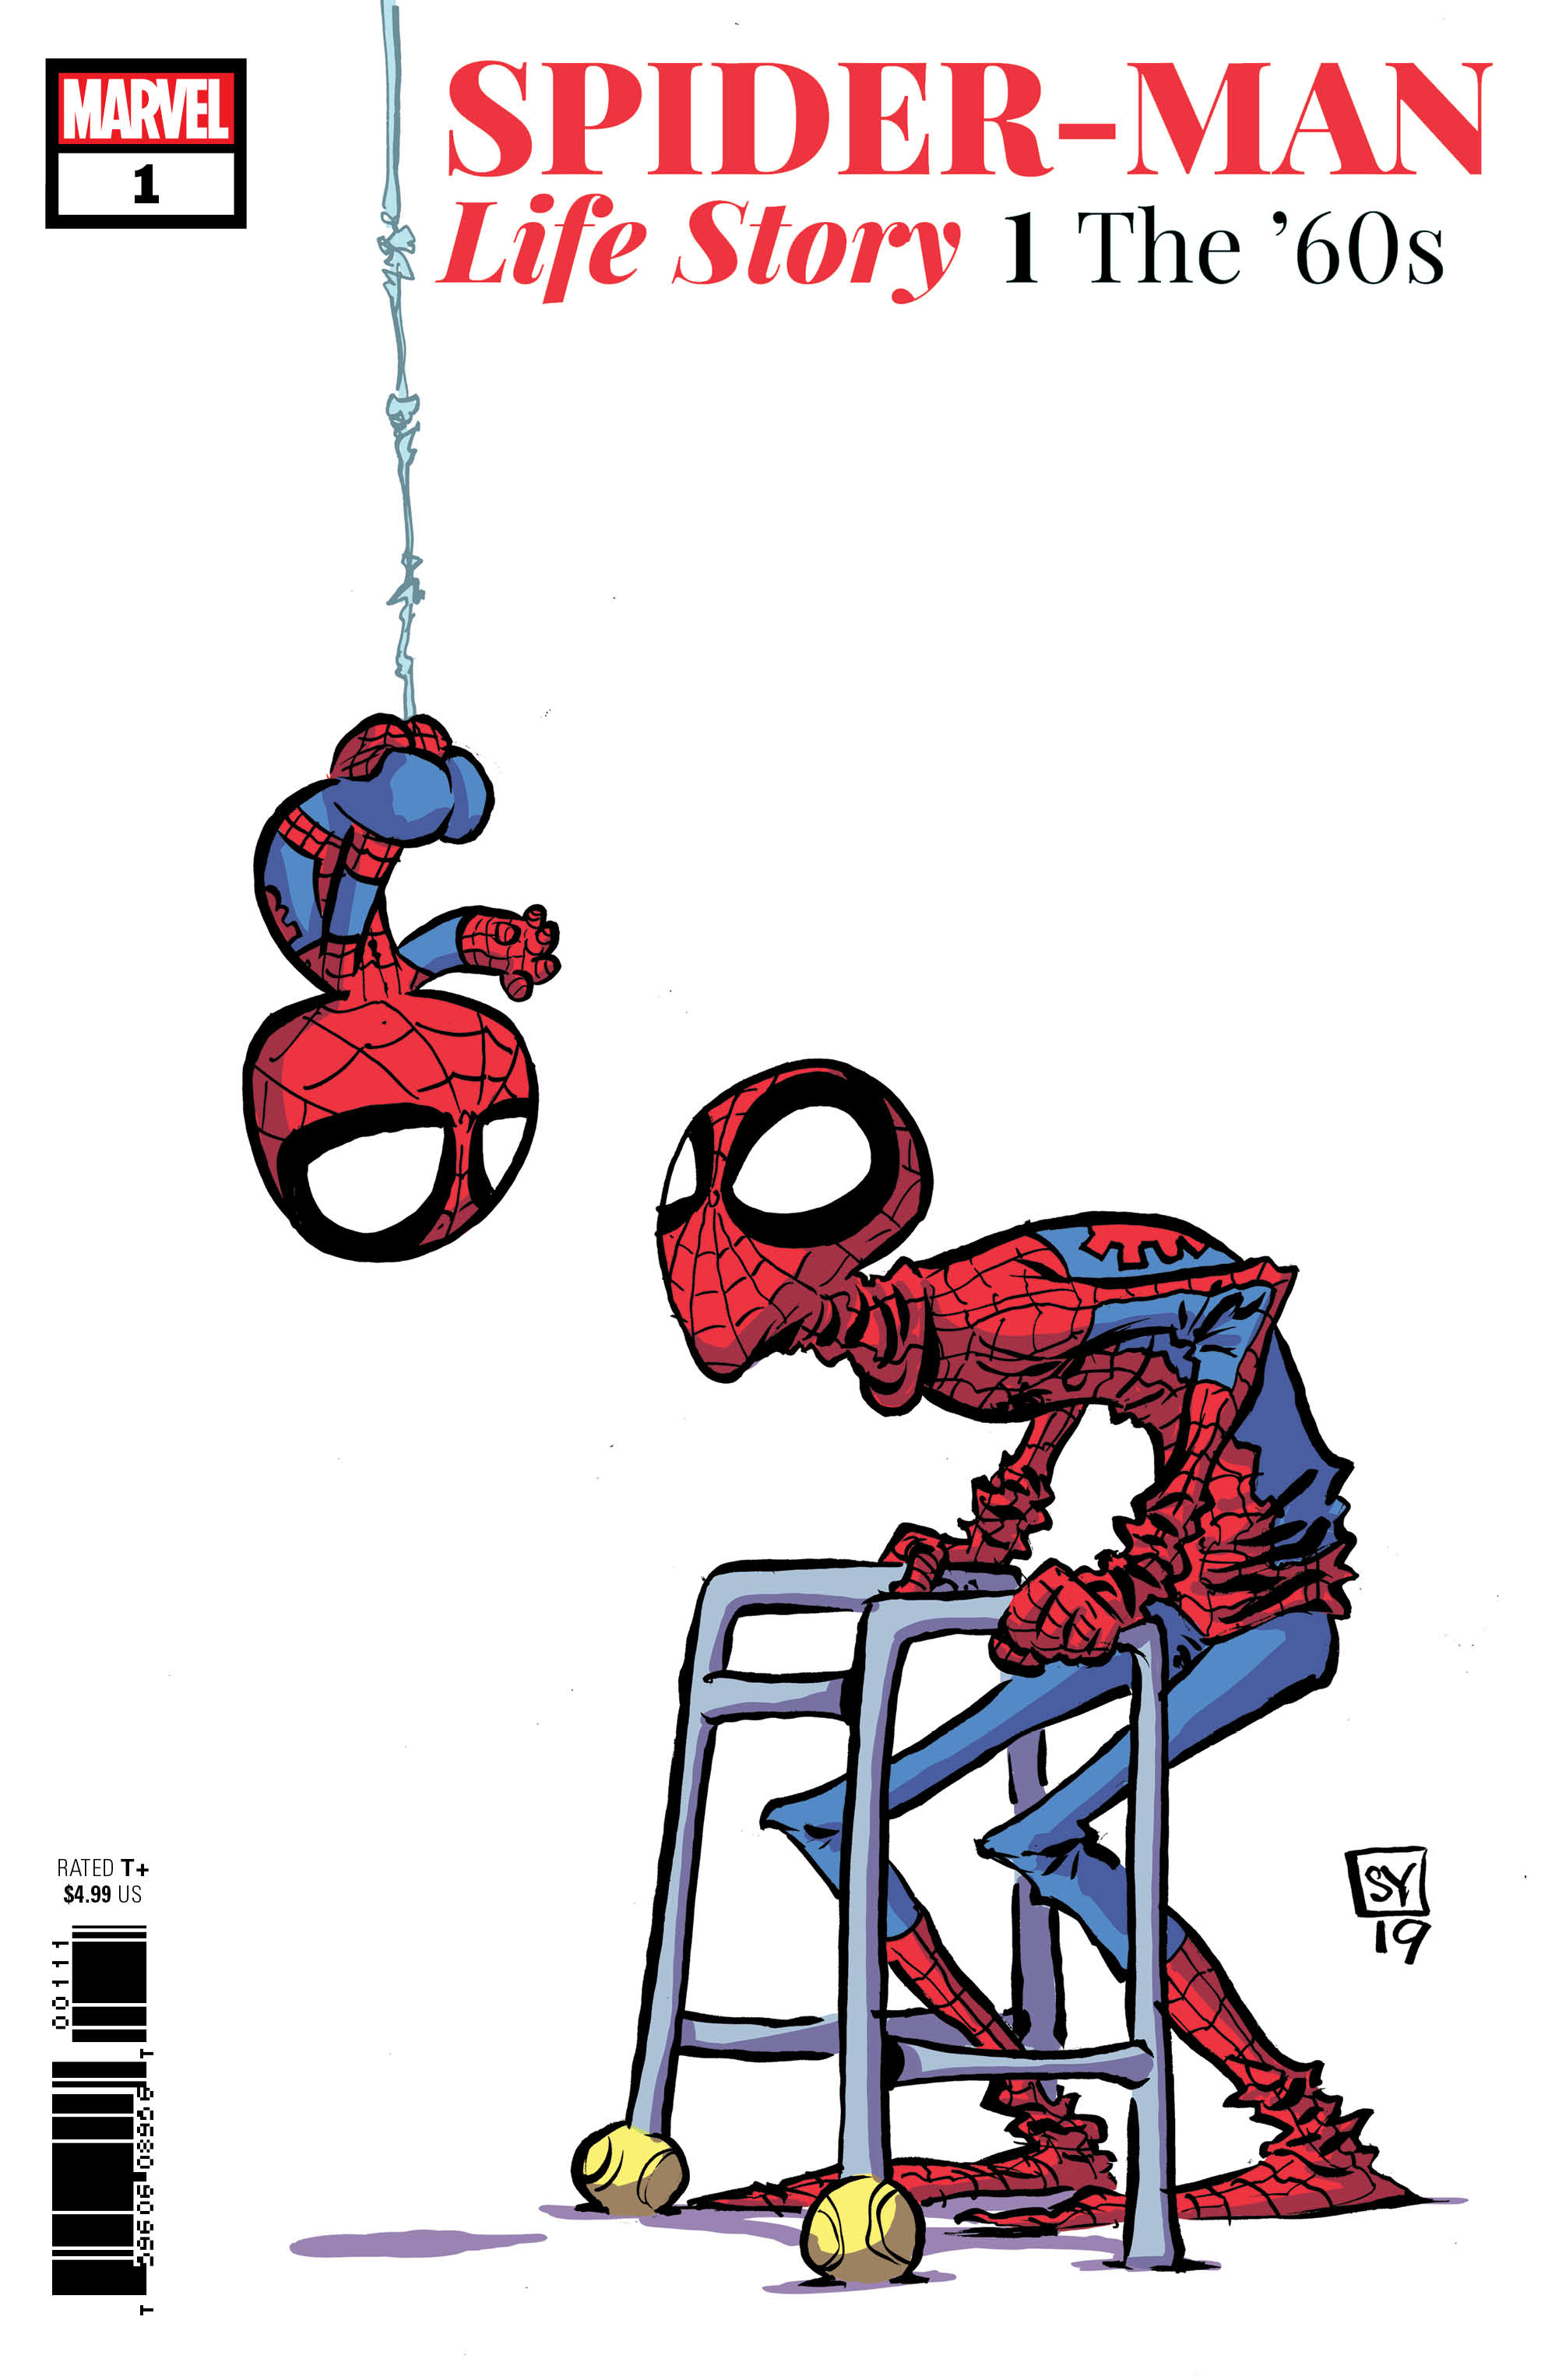 SPIDER-MAN LIFE STORY #1 (OF 6) YOUNG VAR